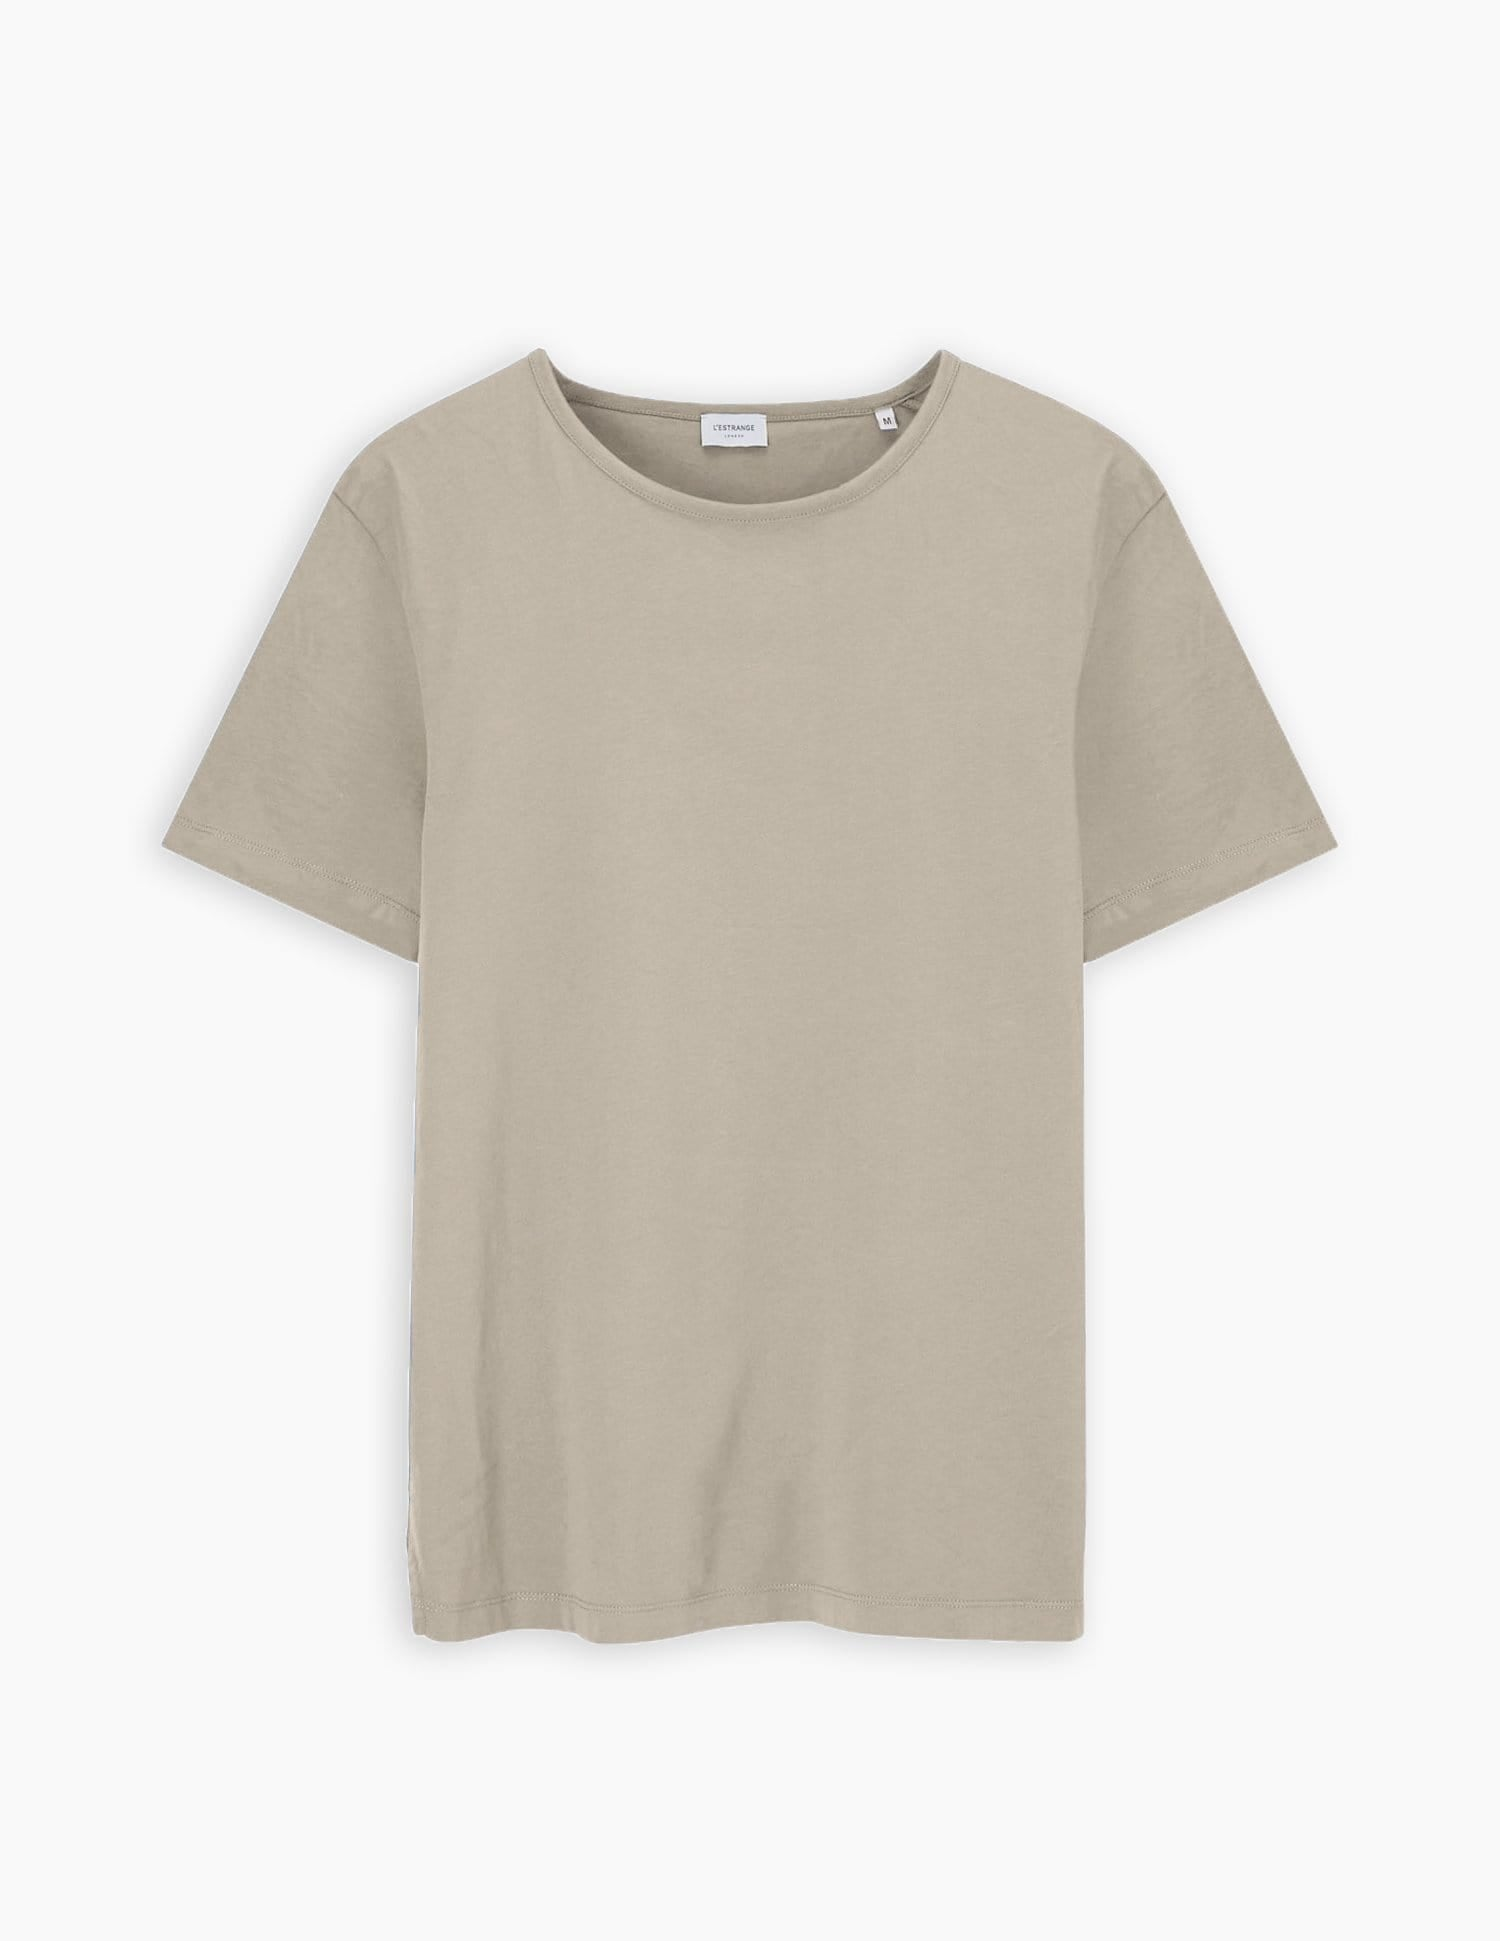 The Tailored Tee Organic || Light Taupe | Organic Cotton